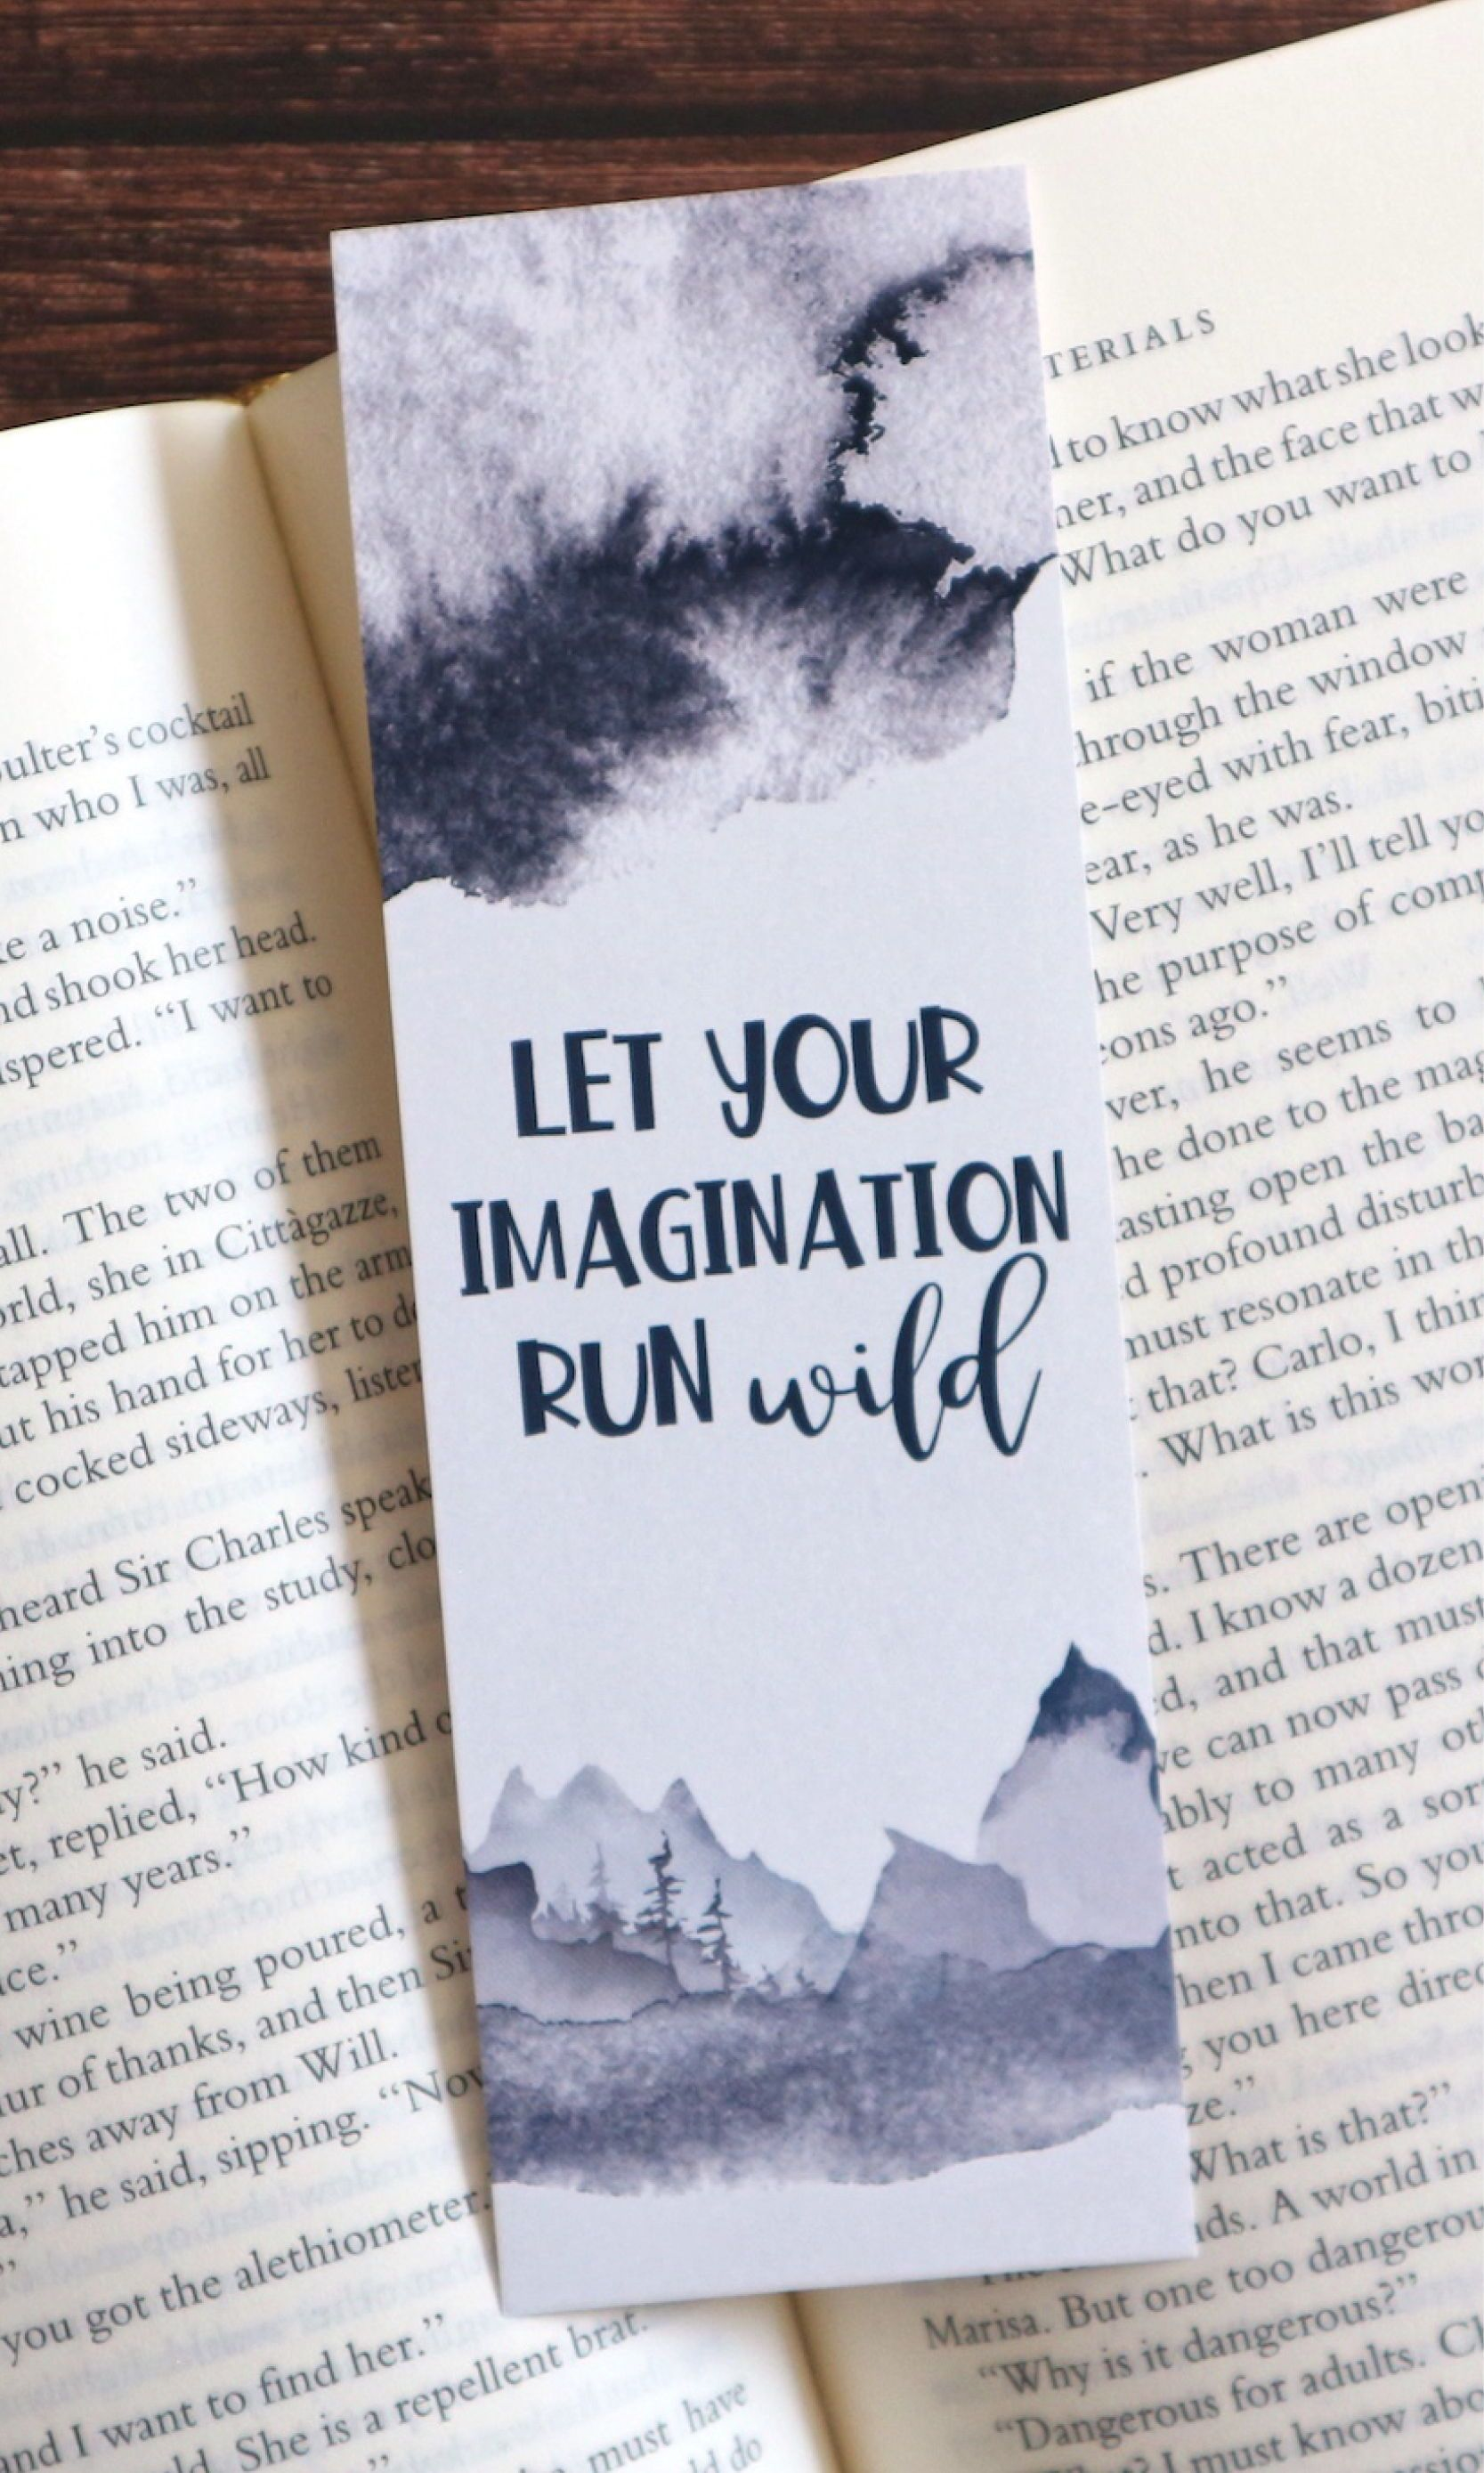 Printable Bookmarks Inspirational Quotes Bookmark Set Wild And Free Wanderlust Bookish Gifts For Readers Digital Bookmark Download Pdf Handmade Bookmarks Diy Creative Bookmarks Bookmarks Handmade